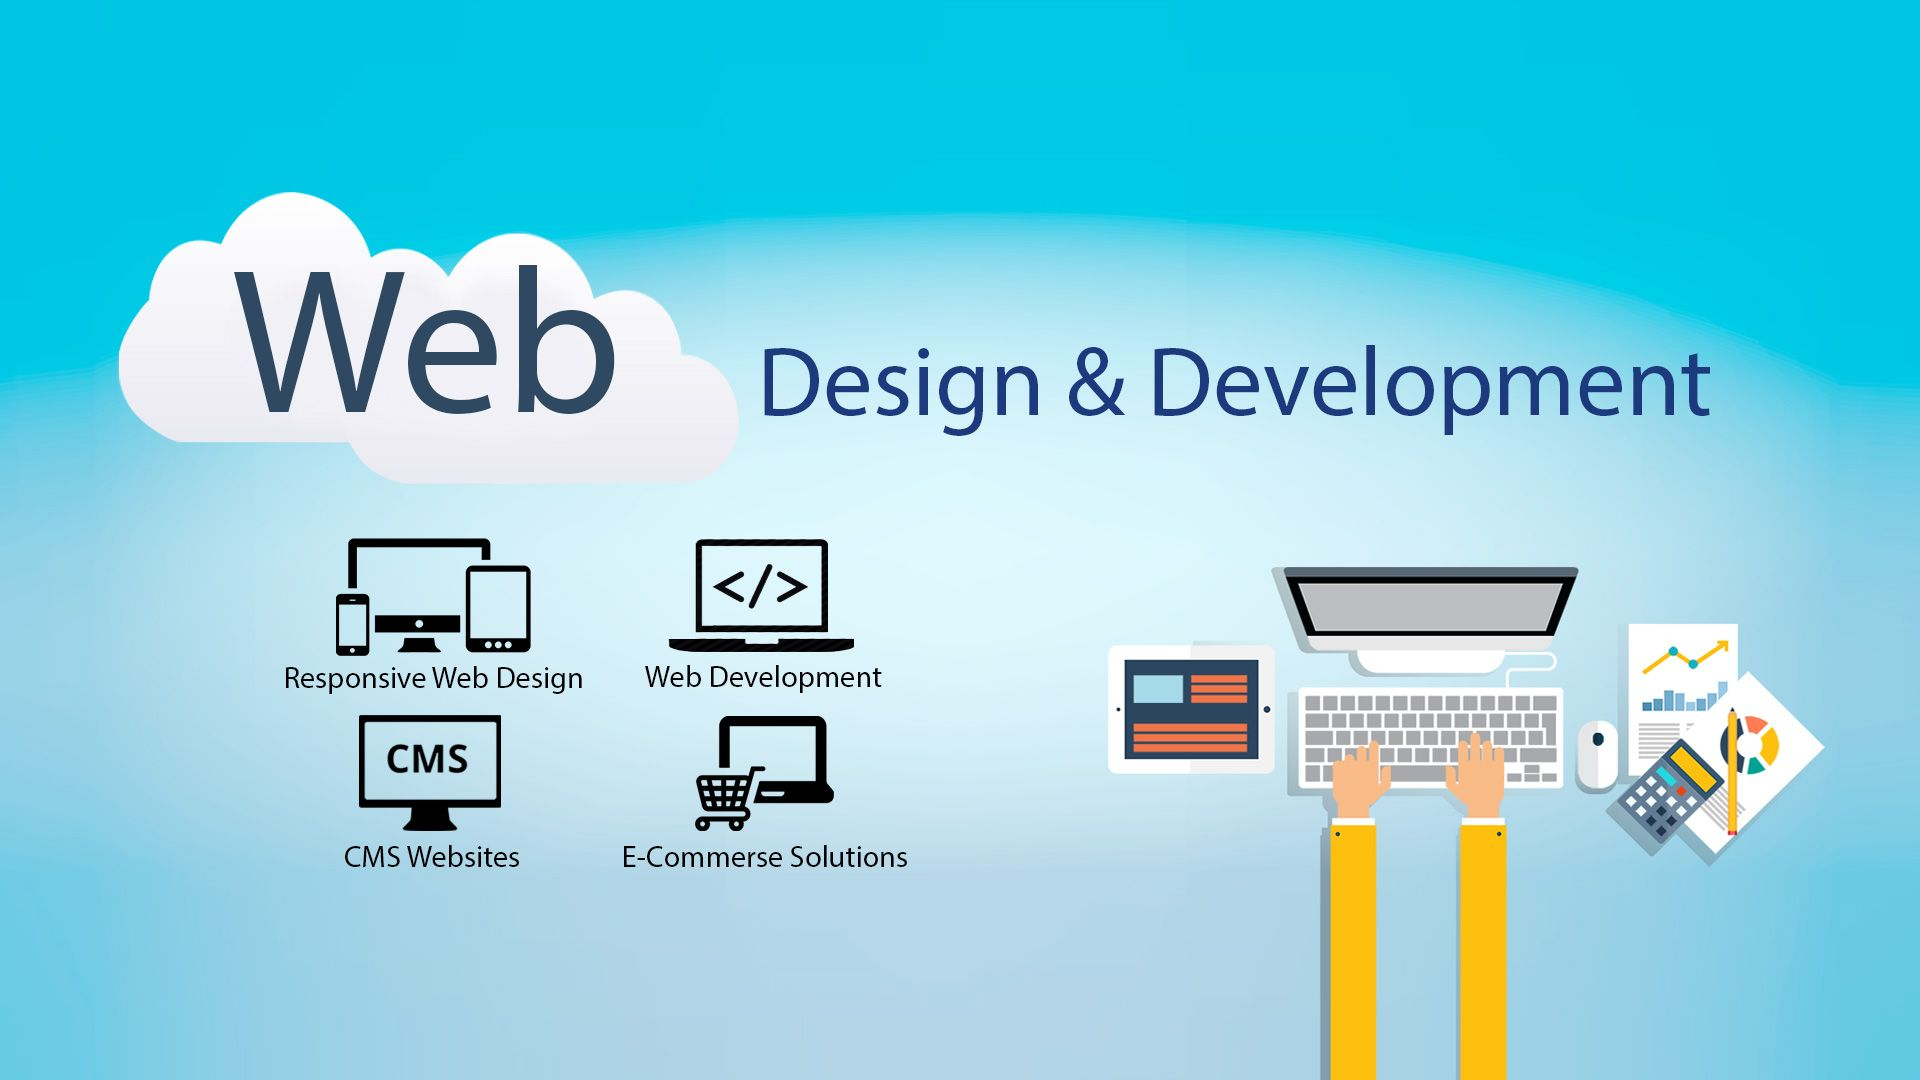 Web Design & Development - Lead It Solution